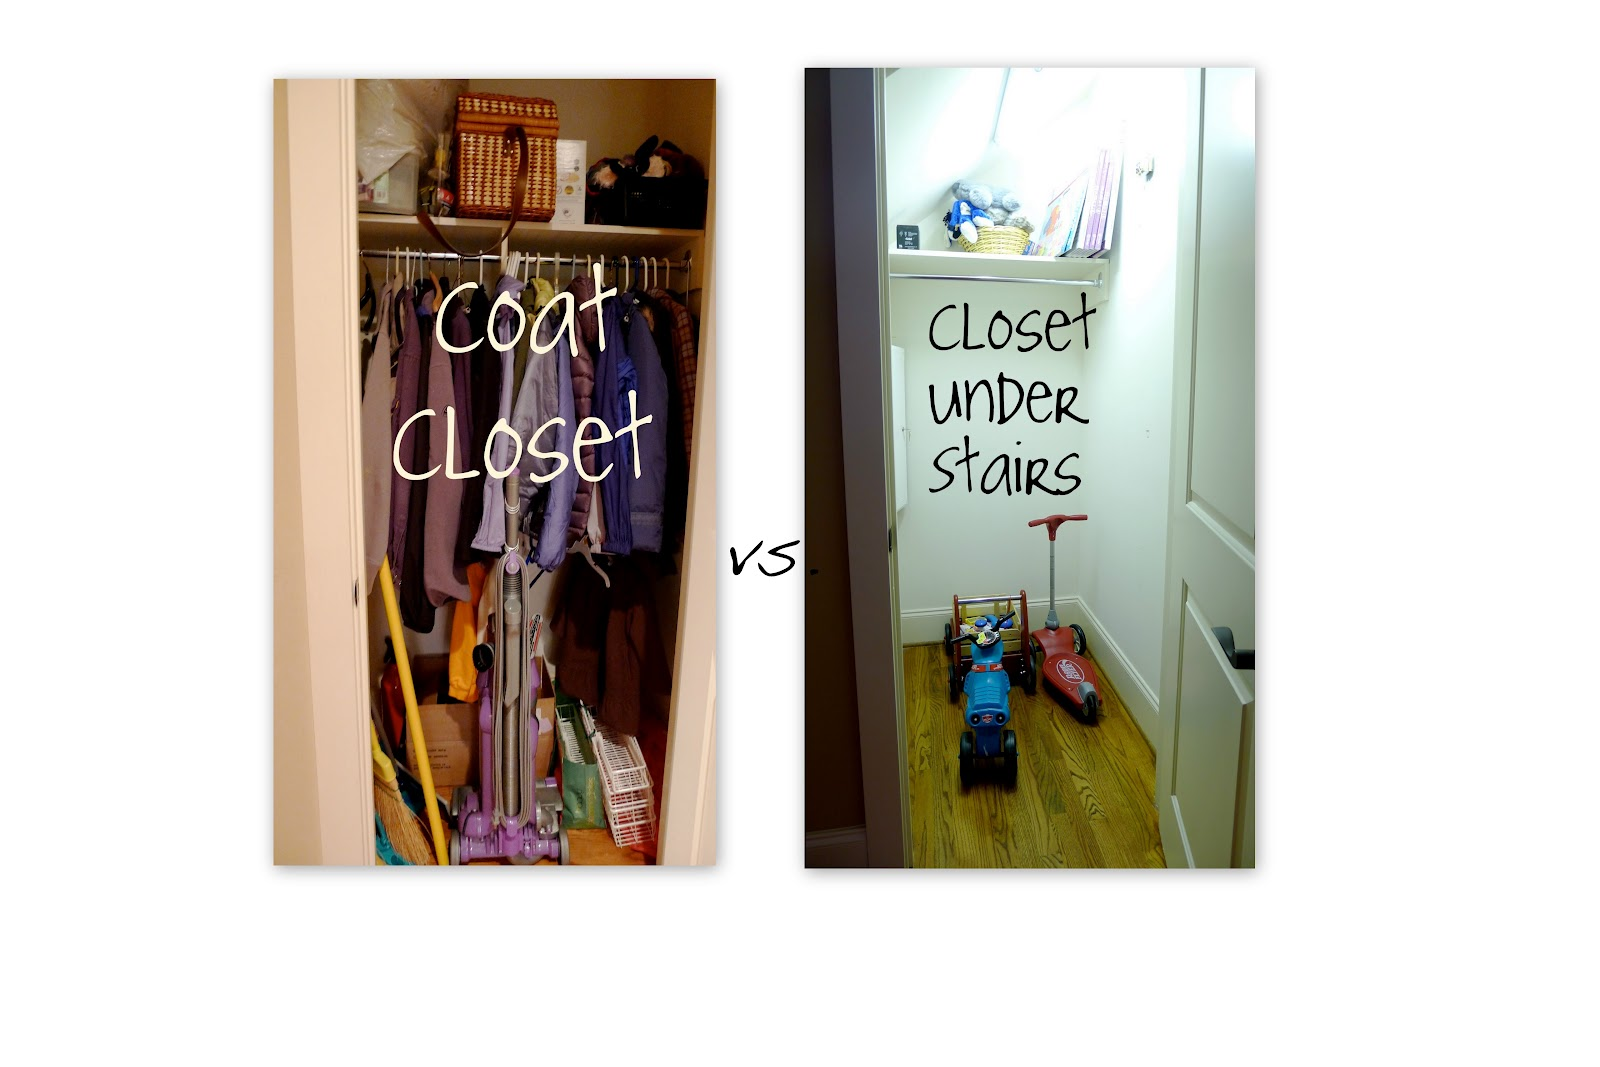 Taking The Coats Out Of Coat Closet